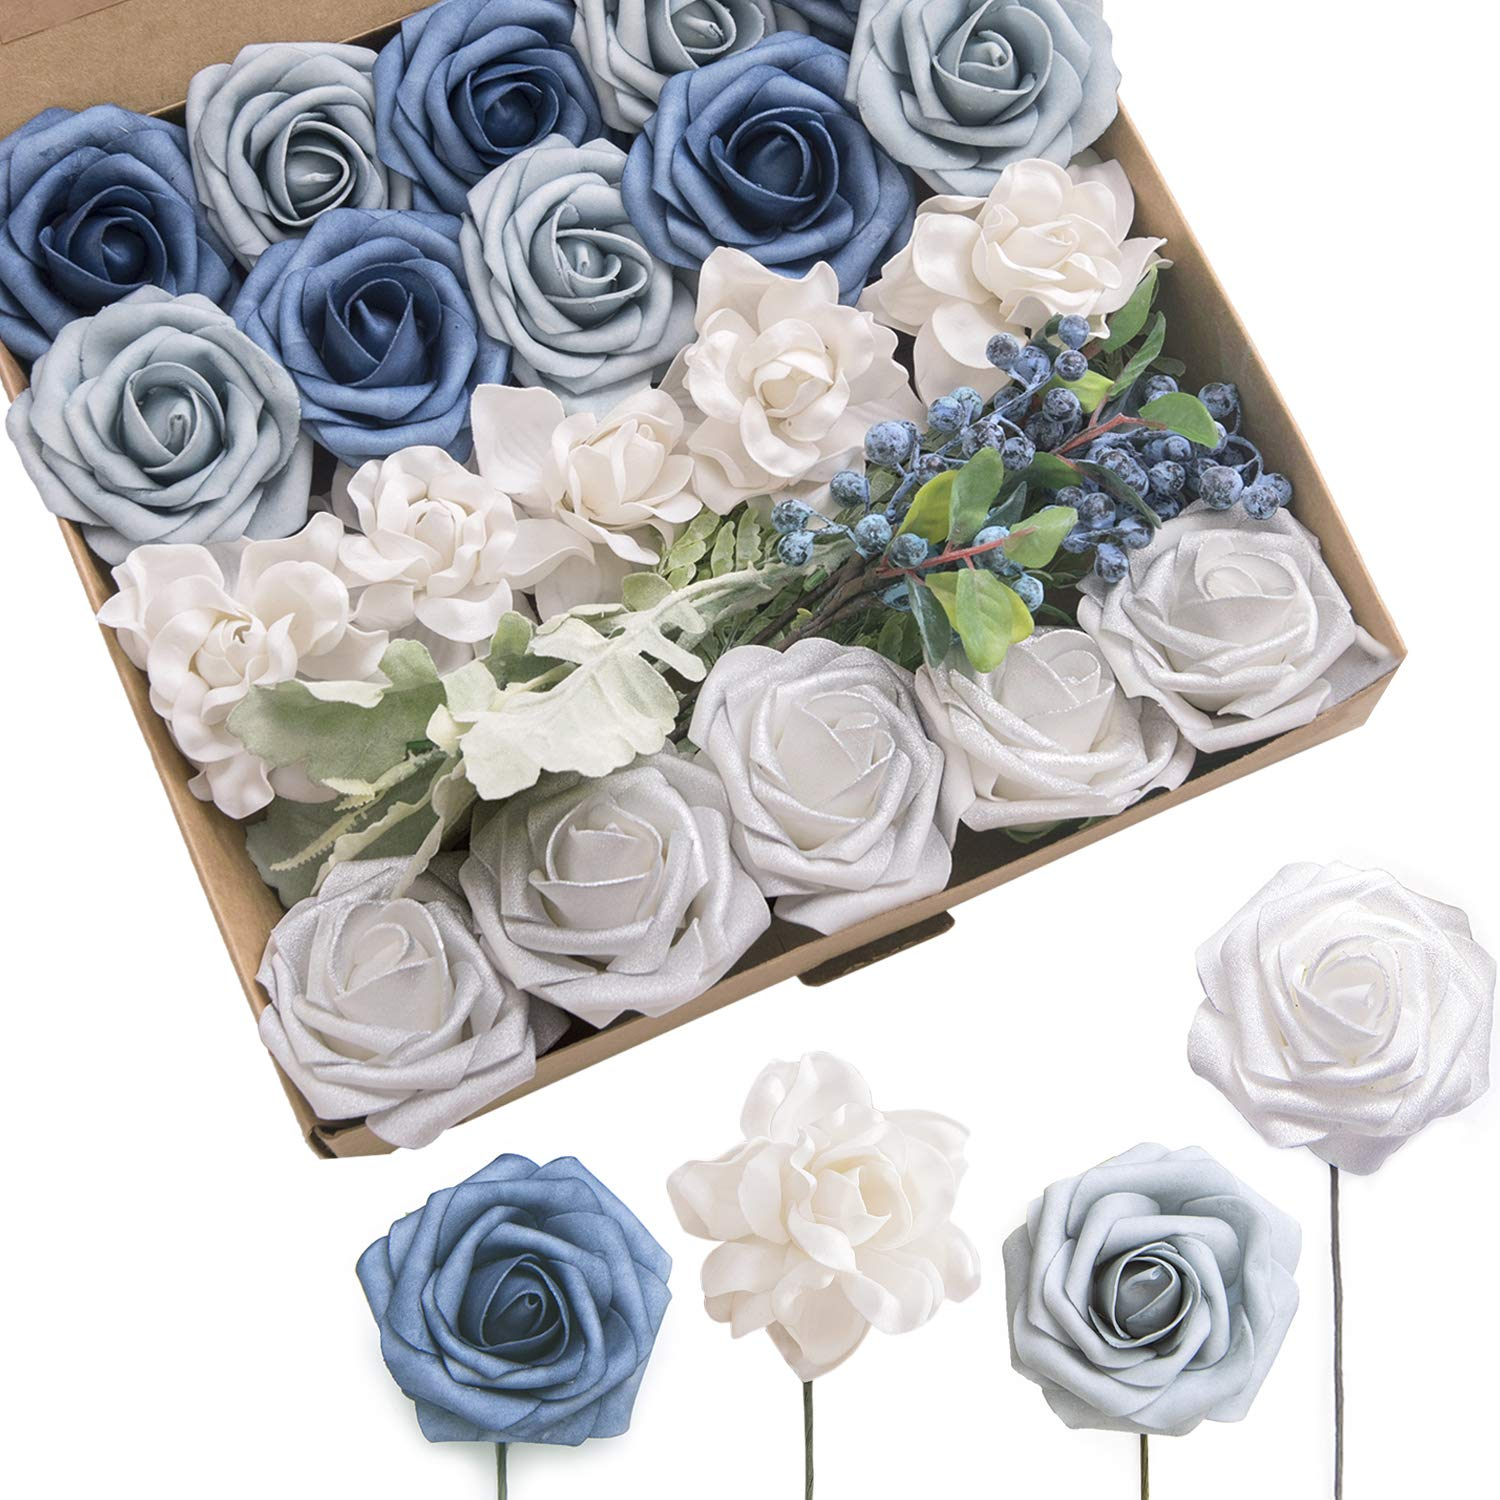 Ling's moment Artificial Flowers Combo with Stem for DIY Wedding Bouquets Flower Arrangements Table Centerpieces Cake Flower Decorations (French Dusty Blue)